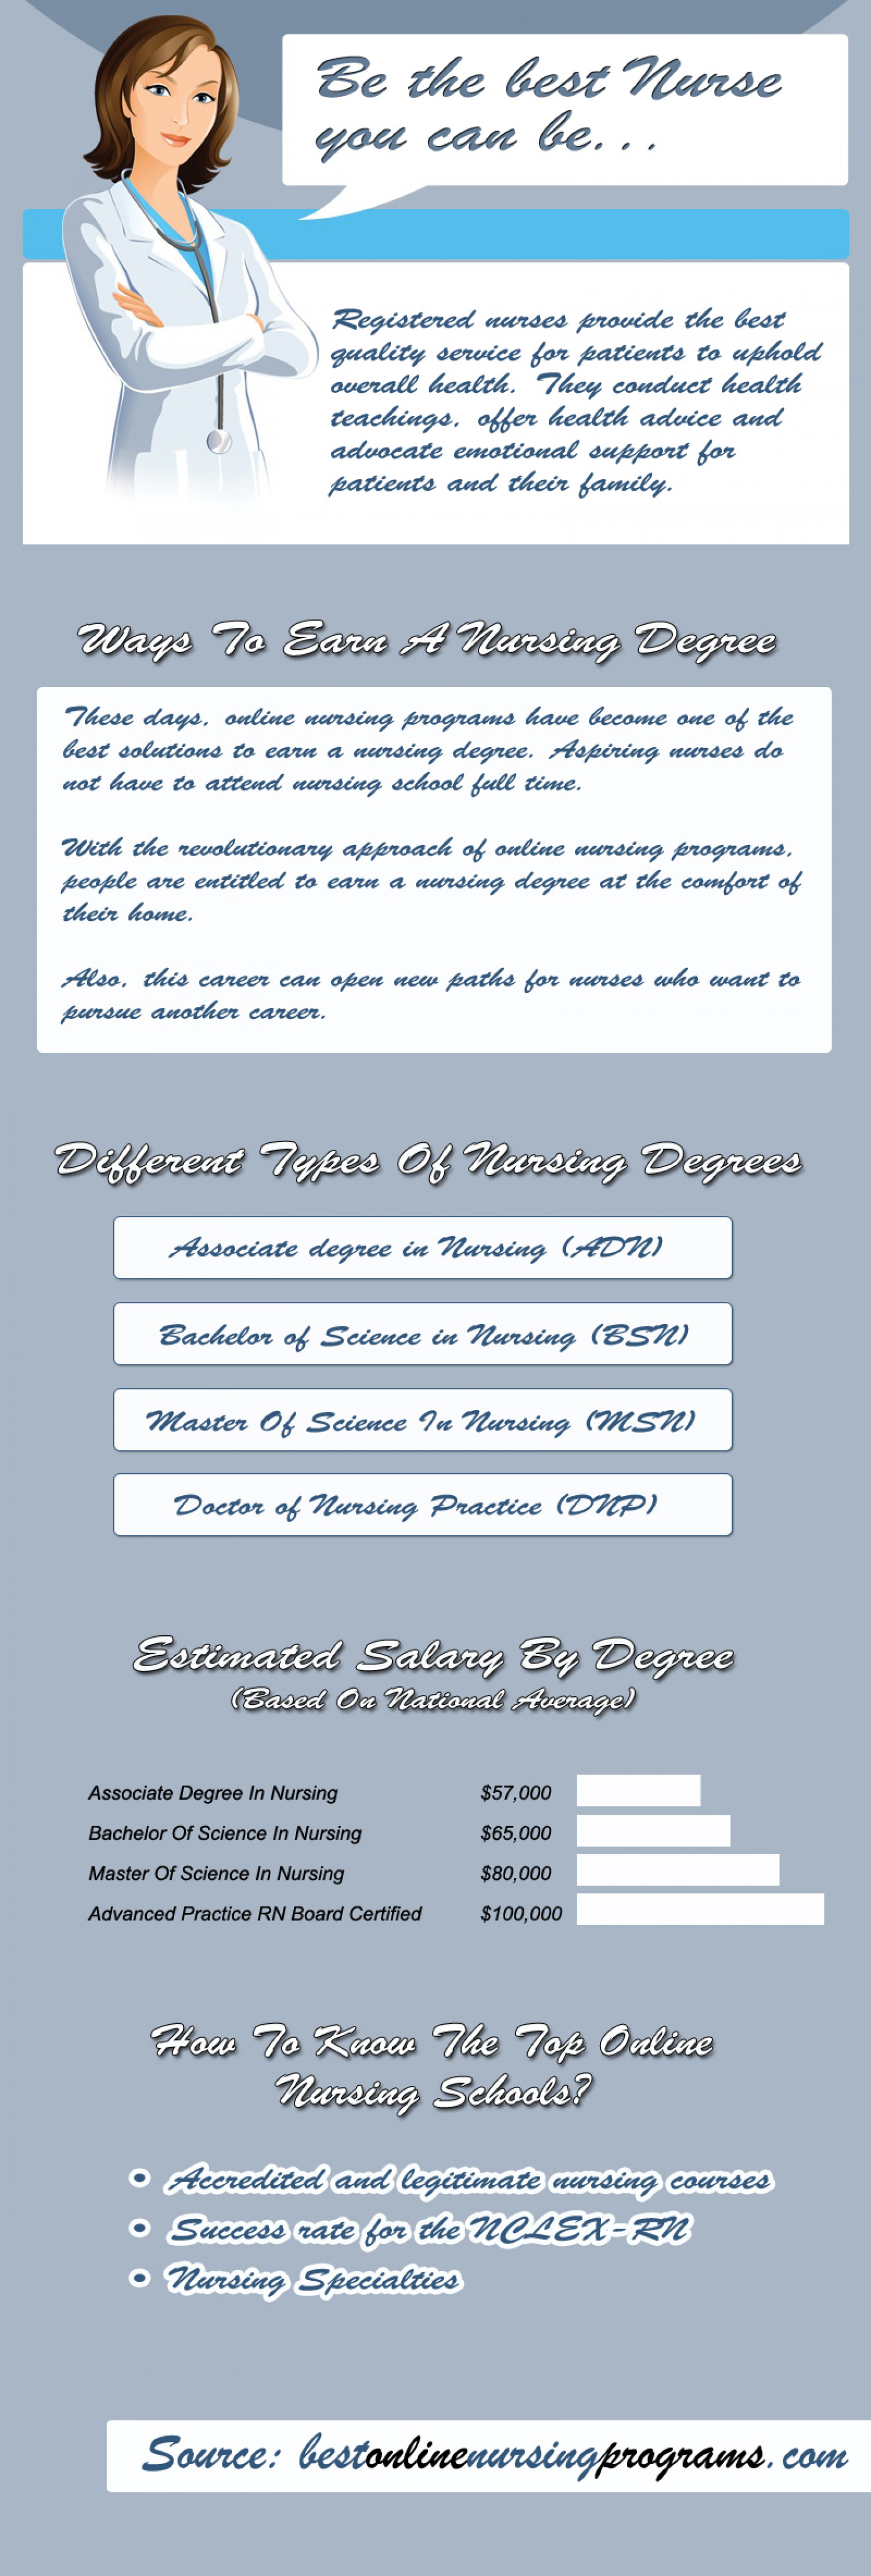 Different Types of Nursing Degrees Infographic